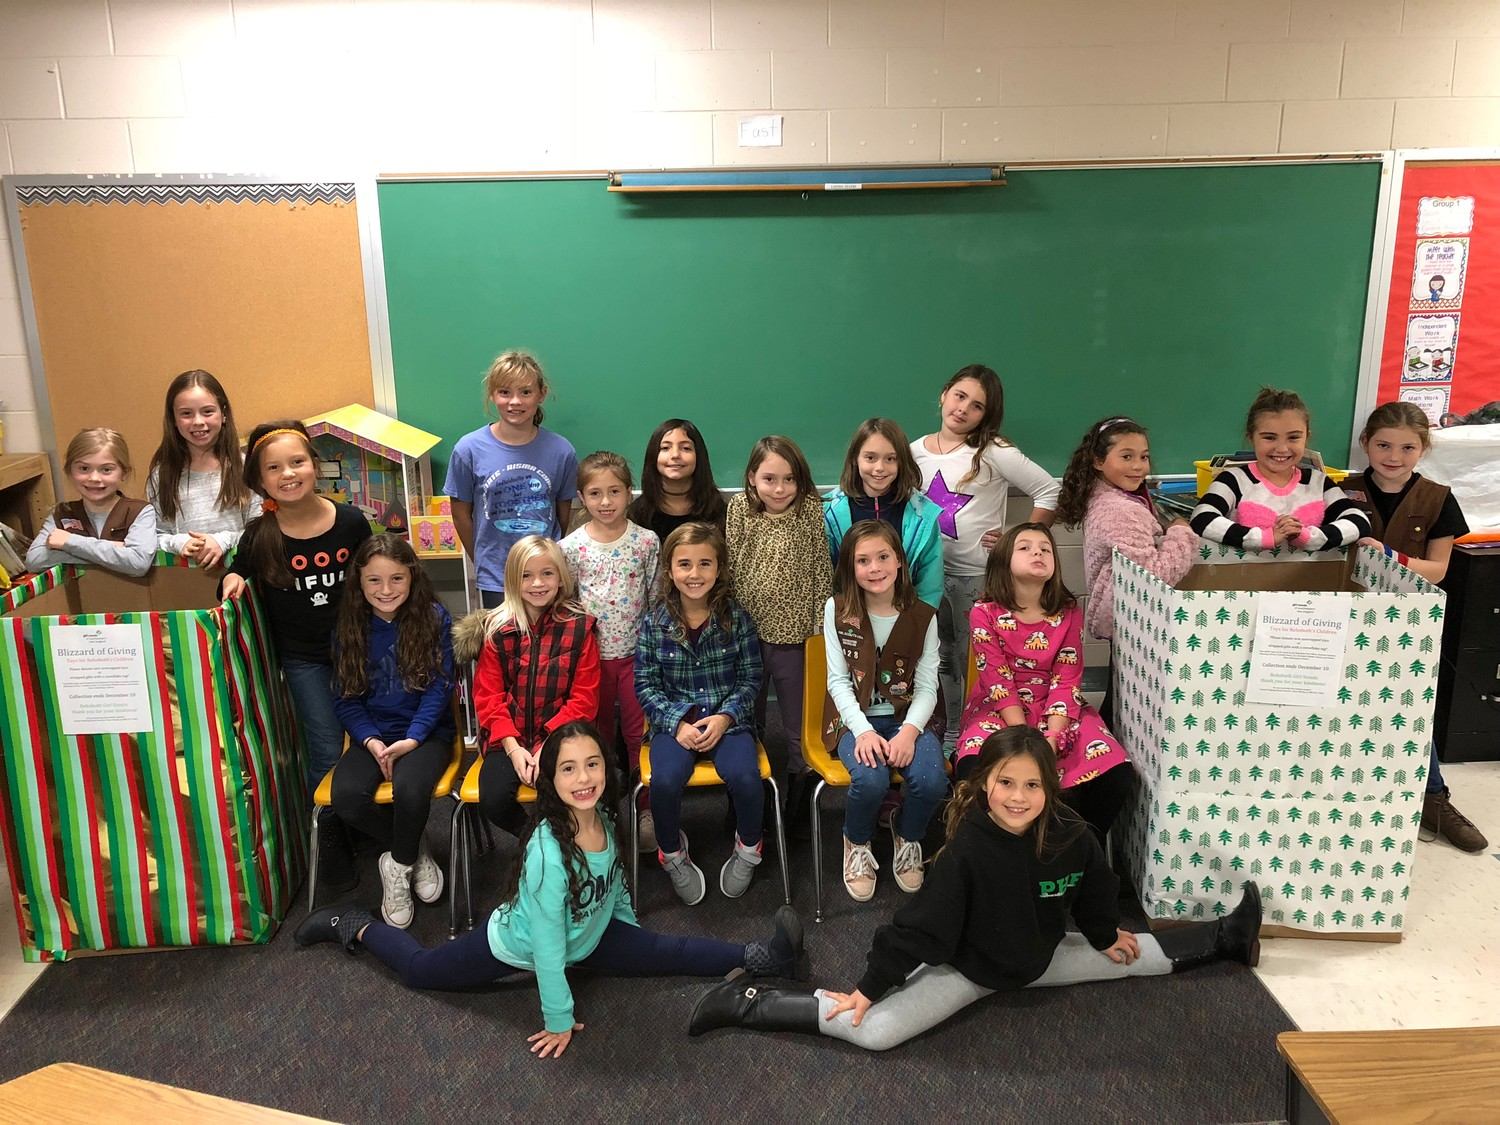 Rehoboth Girl Scout Troop 628 - Blizzard of Giving